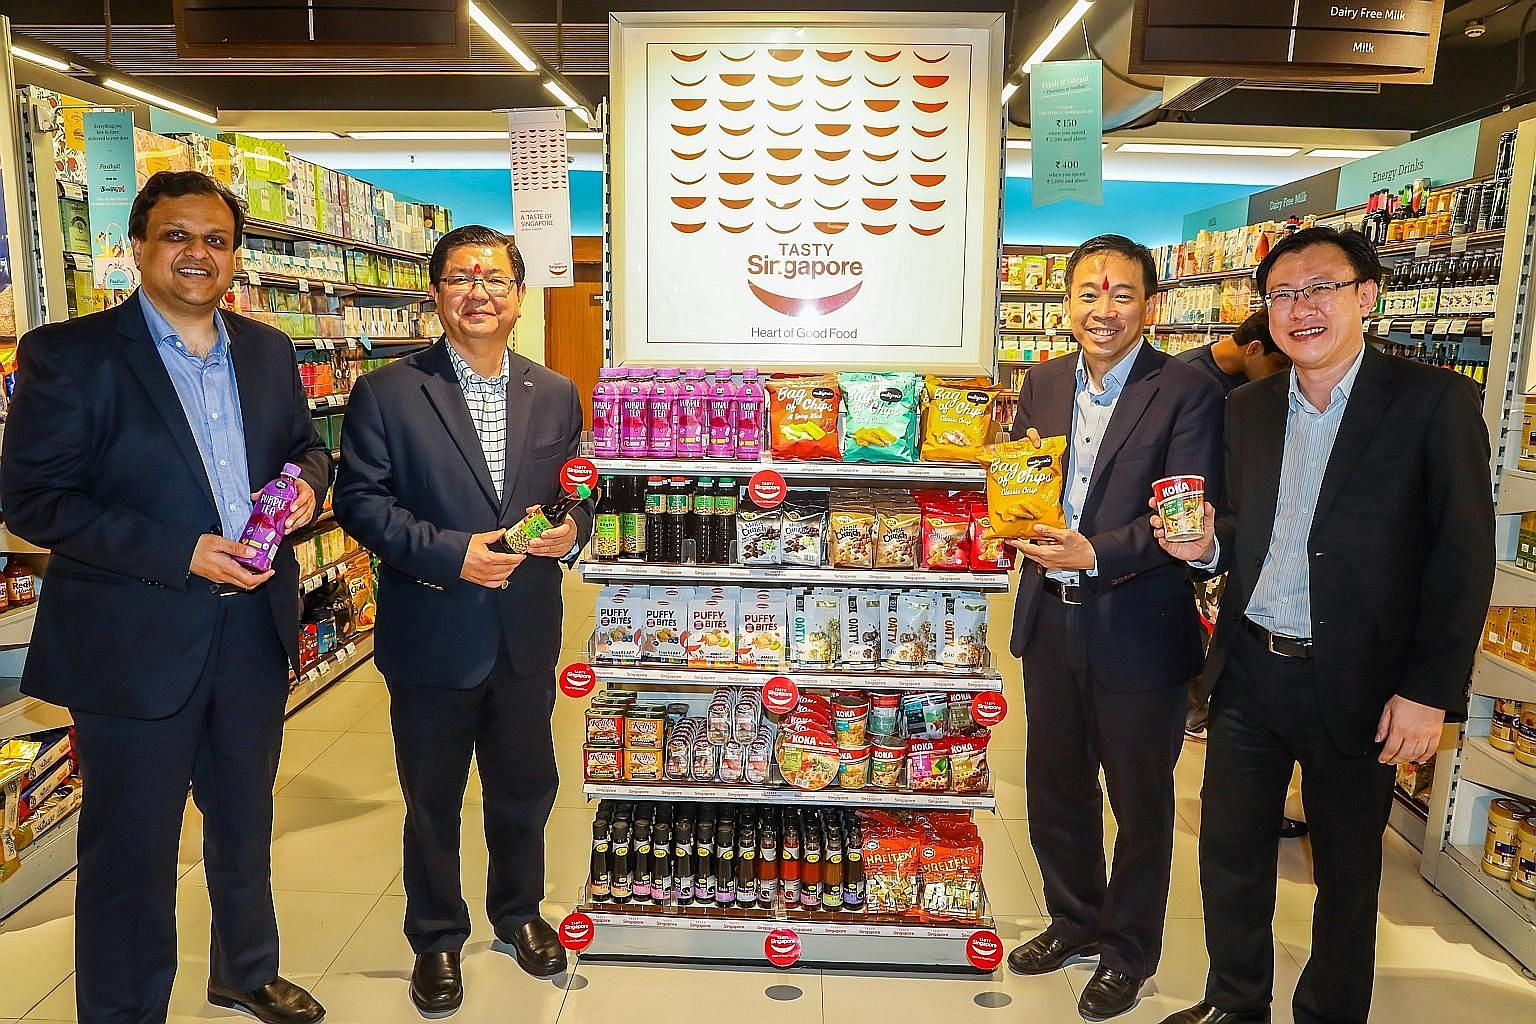 (From left) Foodhall chief operating officer Jay Jhaveri, Singapore Food Manufacturers' Association president David Tan, Enterprise Singapore chief executive Png Cheong Boon and Enterprise Singapore global markets director for South Asia Tay Lian Che